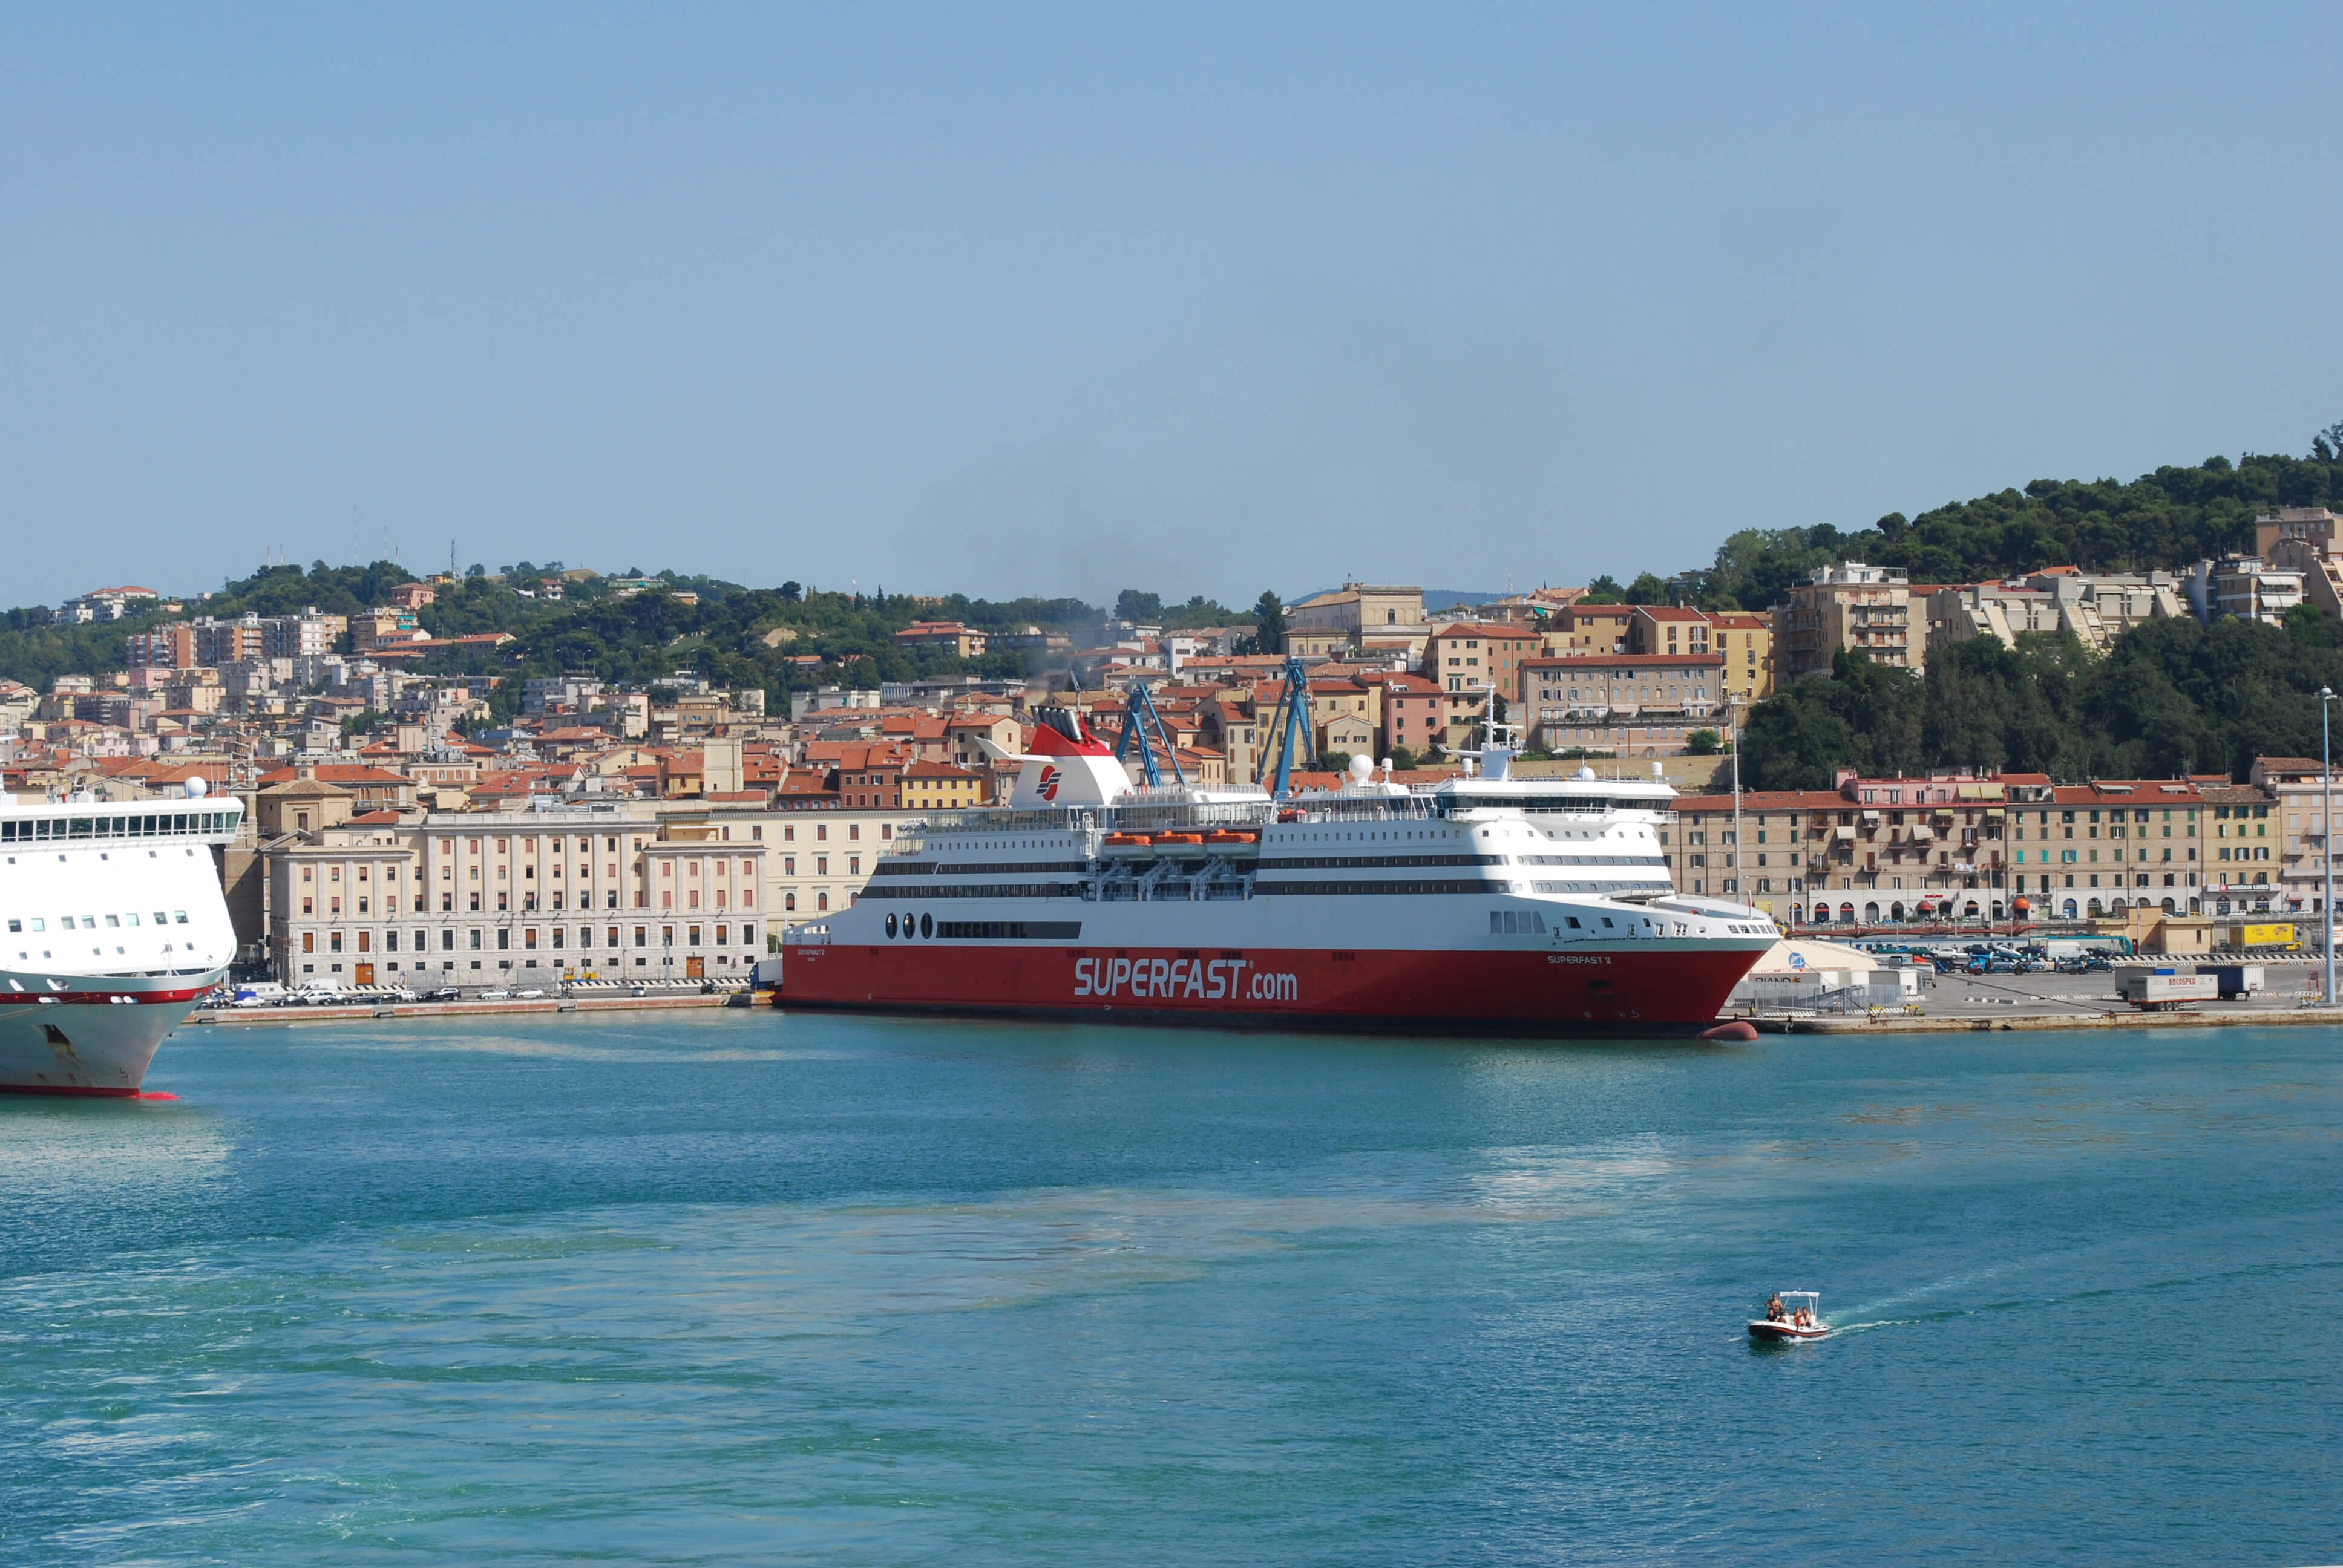 Moovit - Ferry companies and schedules